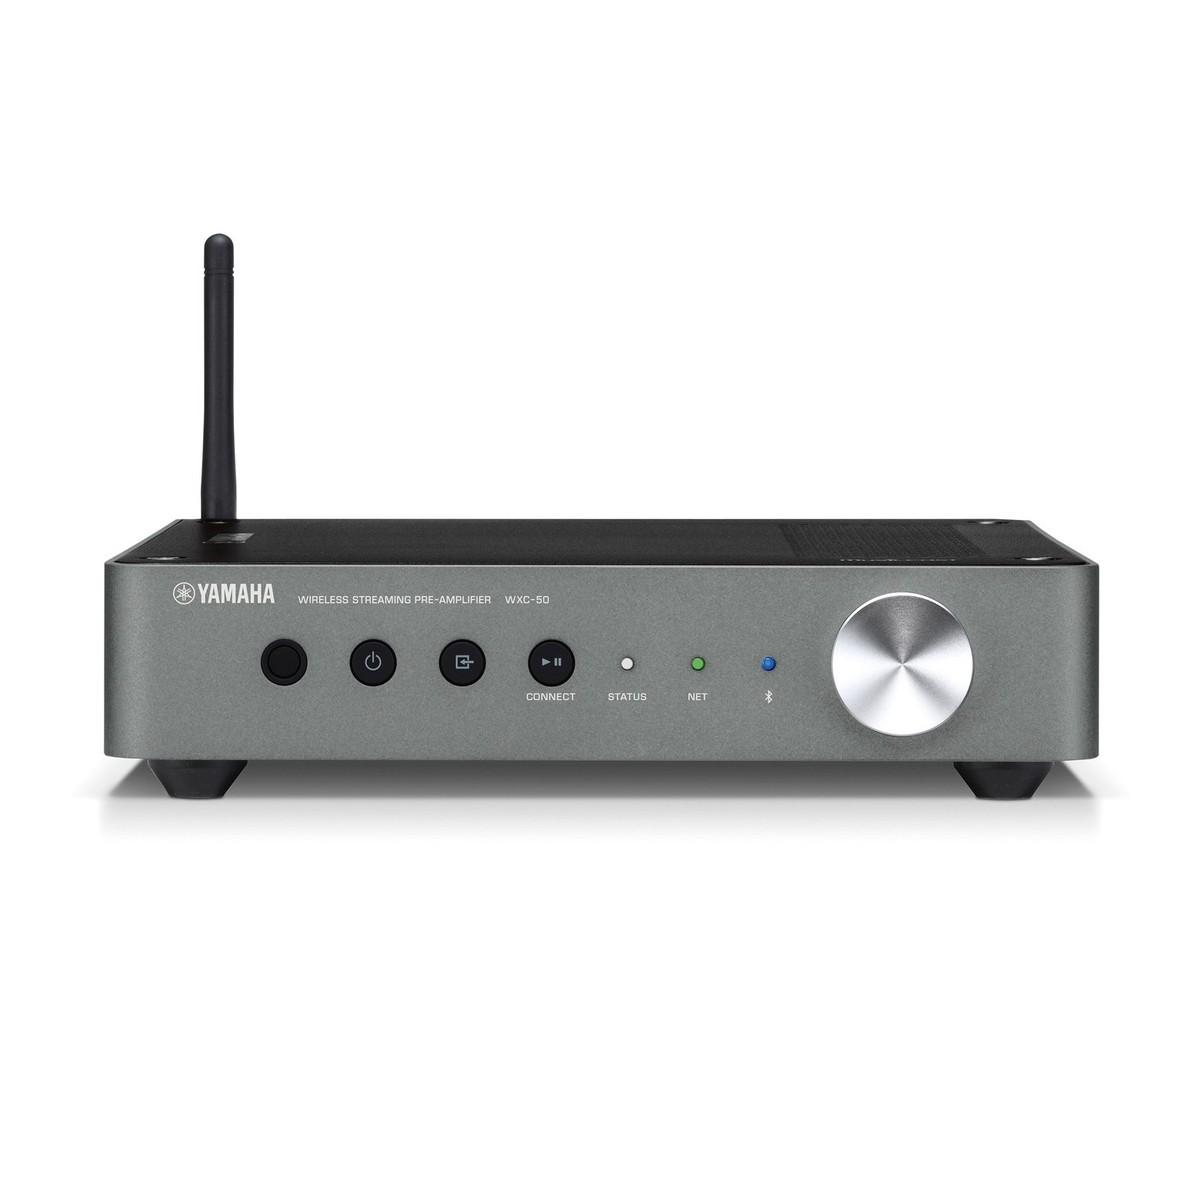 yamaha wxc 50 wireless streaming pre amplifier b stock. Black Bedroom Furniture Sets. Home Design Ideas